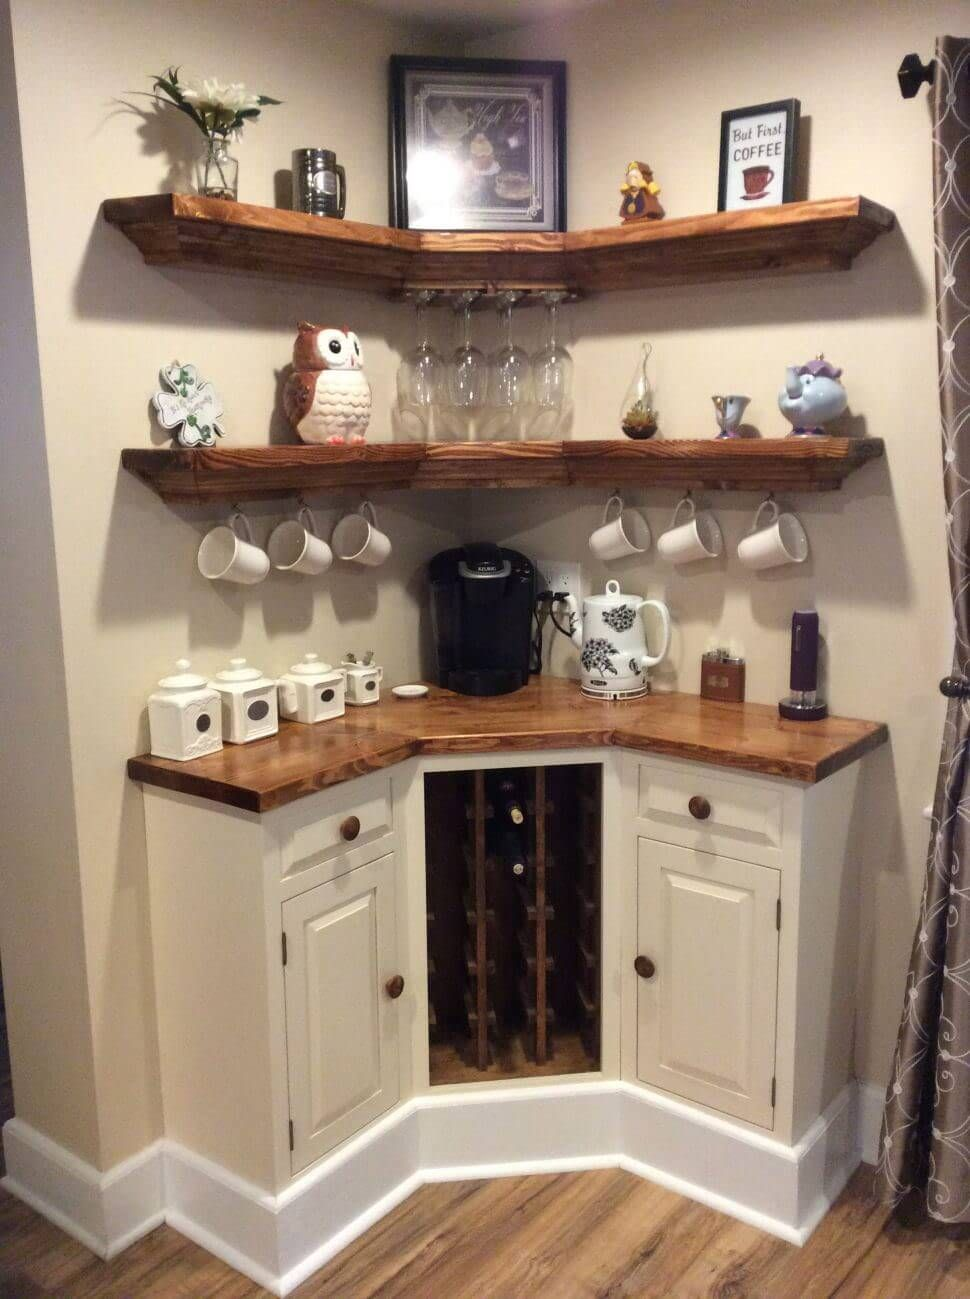 37 Corner Storage Options Every Room Covered Home Decor Home Diy Home Coffee Stations